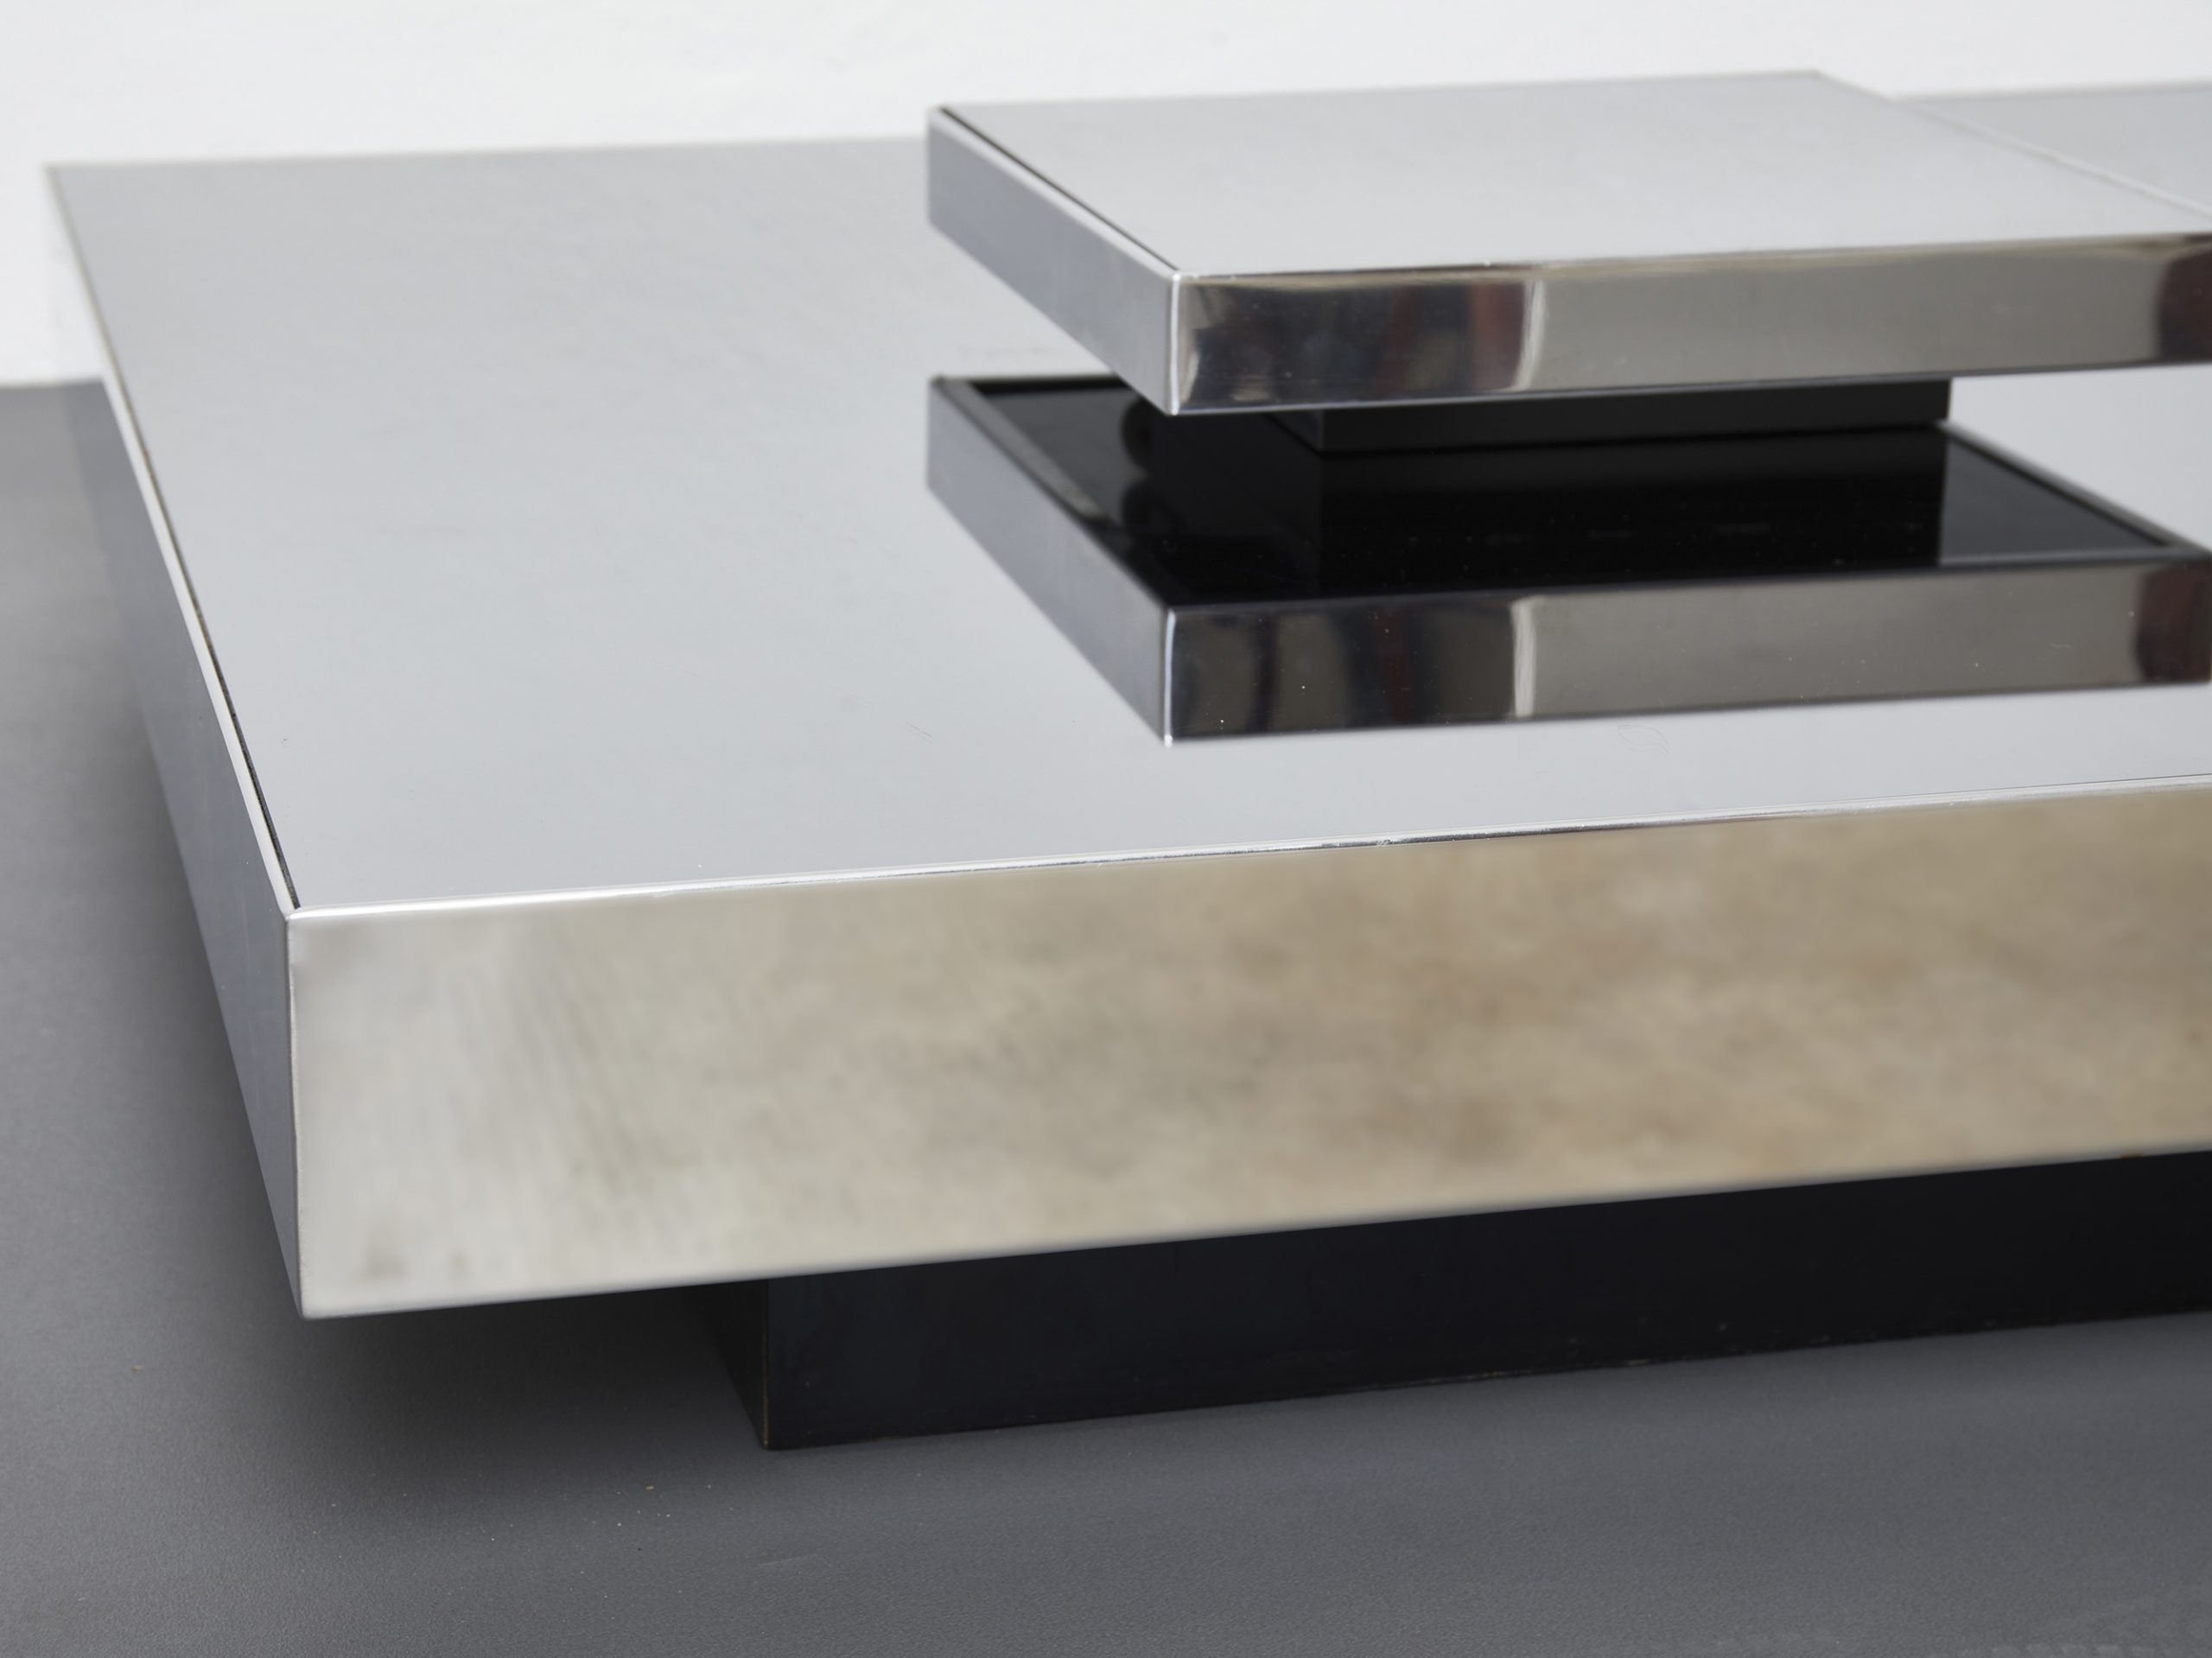 square-coffee-table-by-giovanni-ausenda-ny-form-1970-image-07